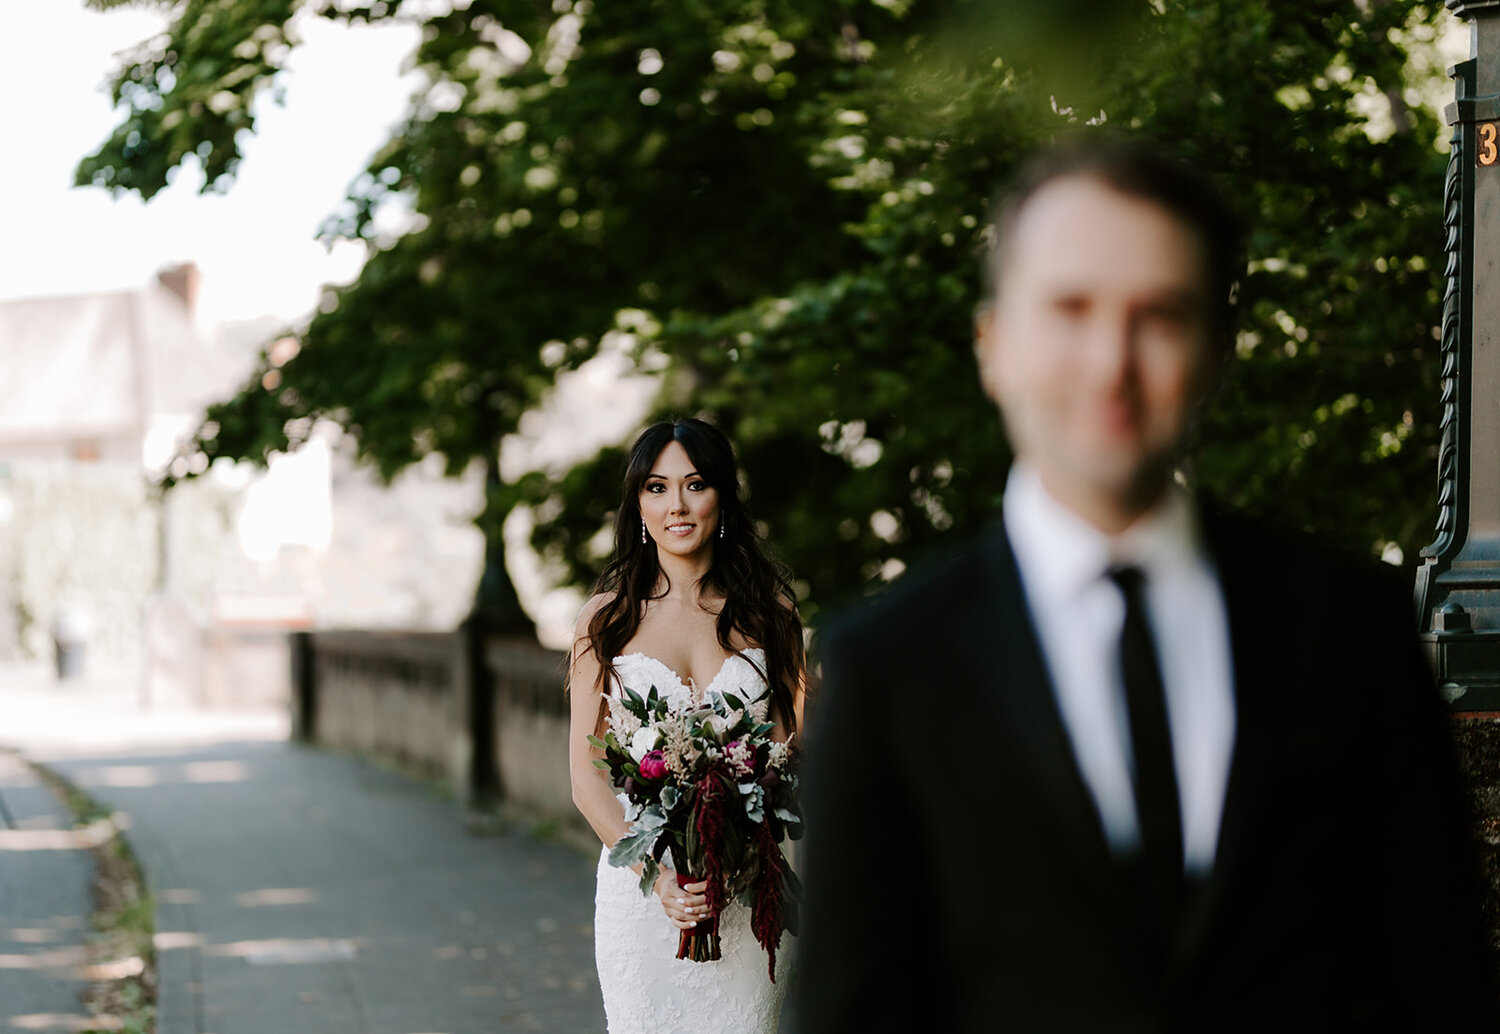 Jenny + Luke - Parsons Gardens - Seattle Washington - Sneak Peeks! Meme Urbane Photography-19_websize.jpg